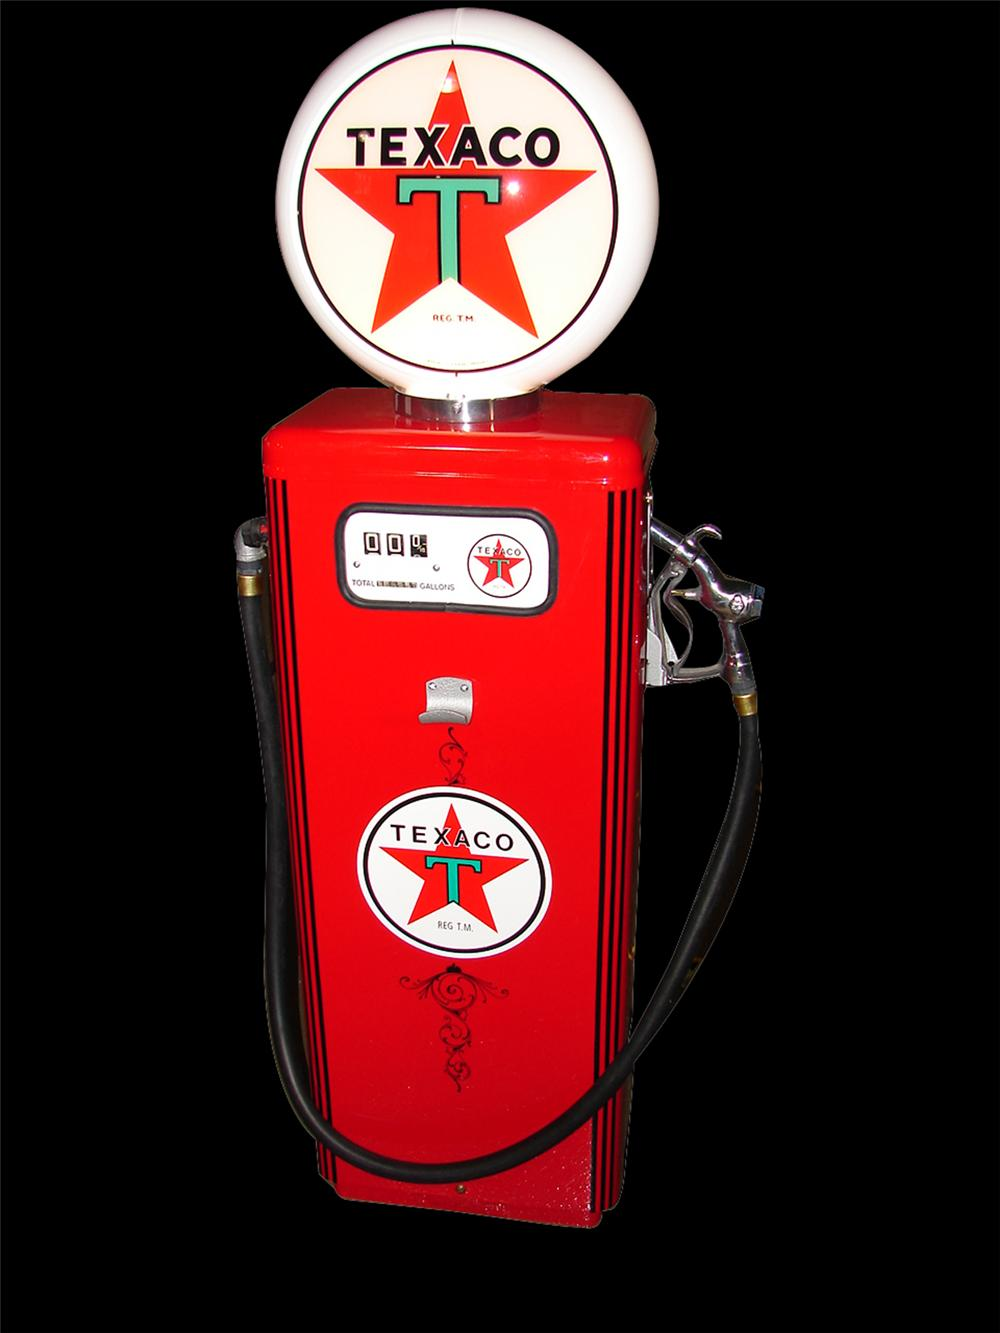 Nifty 1960s Texaco Low Boy restored service station gas pump. - Front 3/4 - 97371